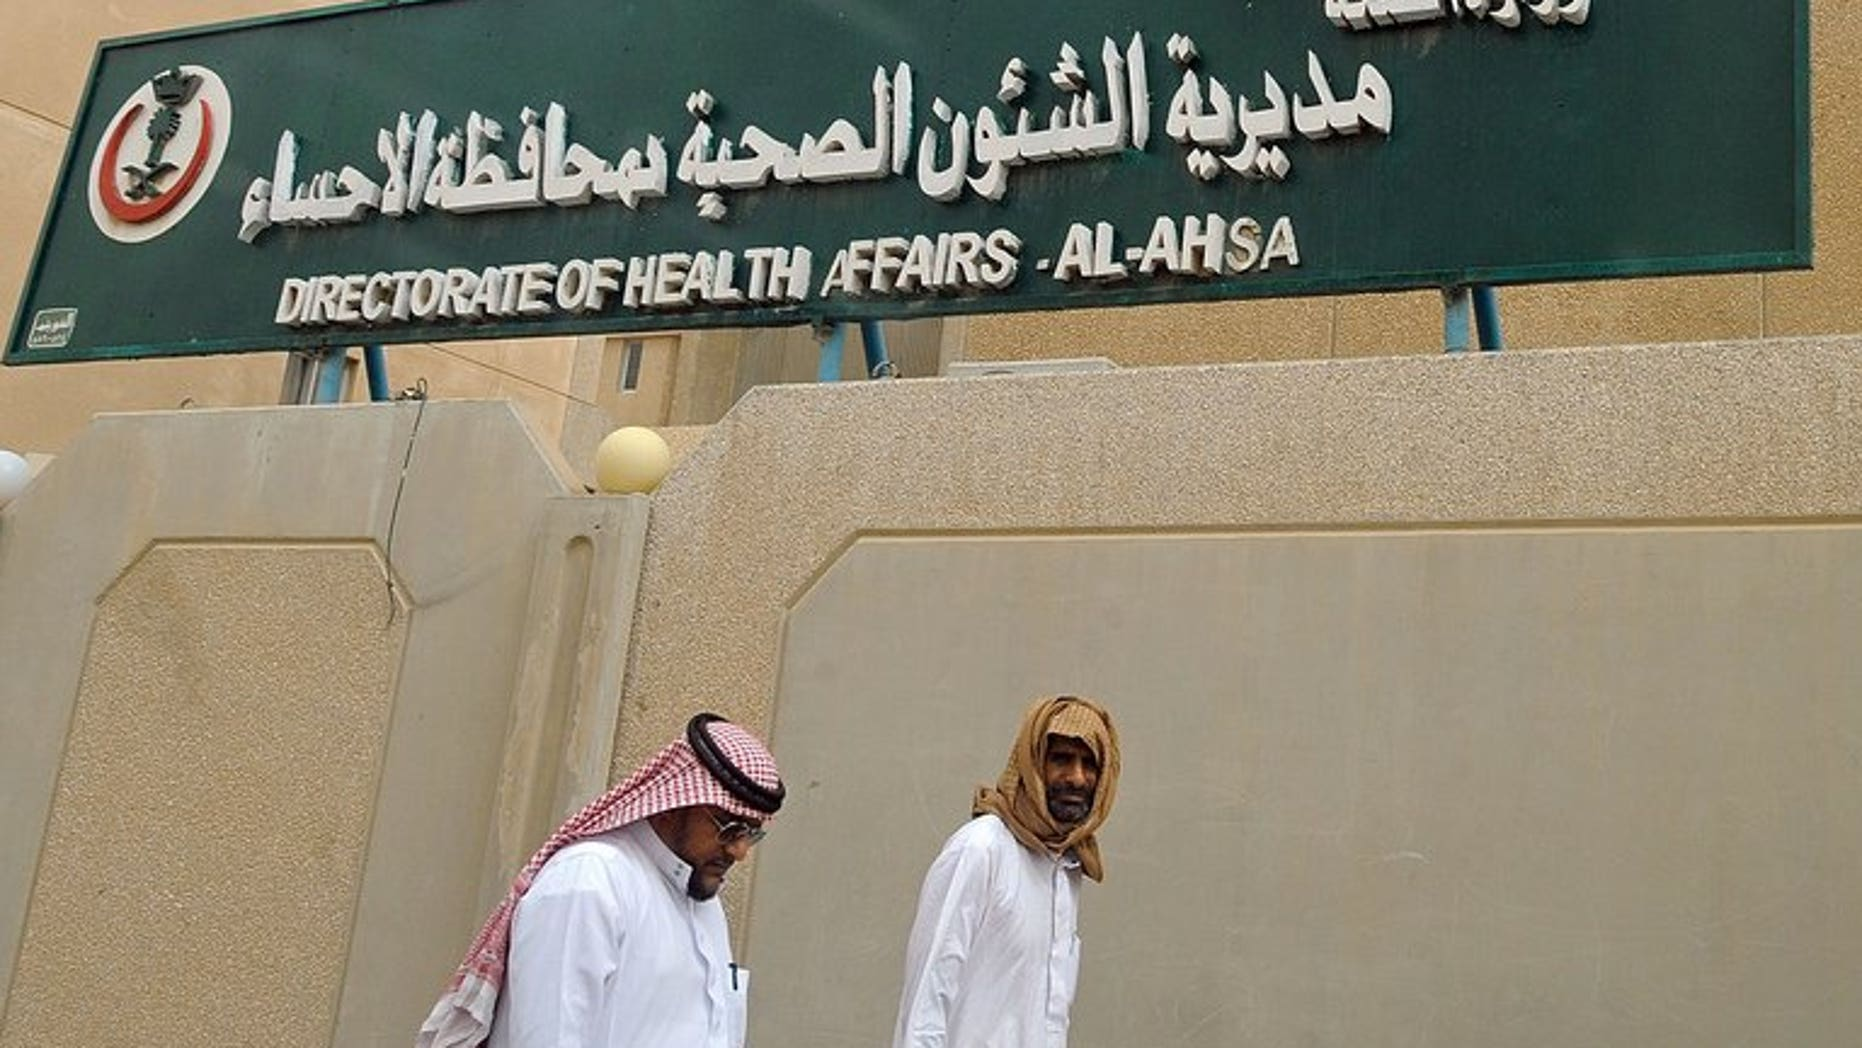 Saudi men walk to the King Fahad hospital in the city of Hofuf, east of the capital Riyadh on June 16, 2013. The World Health Organization announced it had convened emergency talks on the deadly MERS virus, but said the move did not mean it was hiking its global alert level.